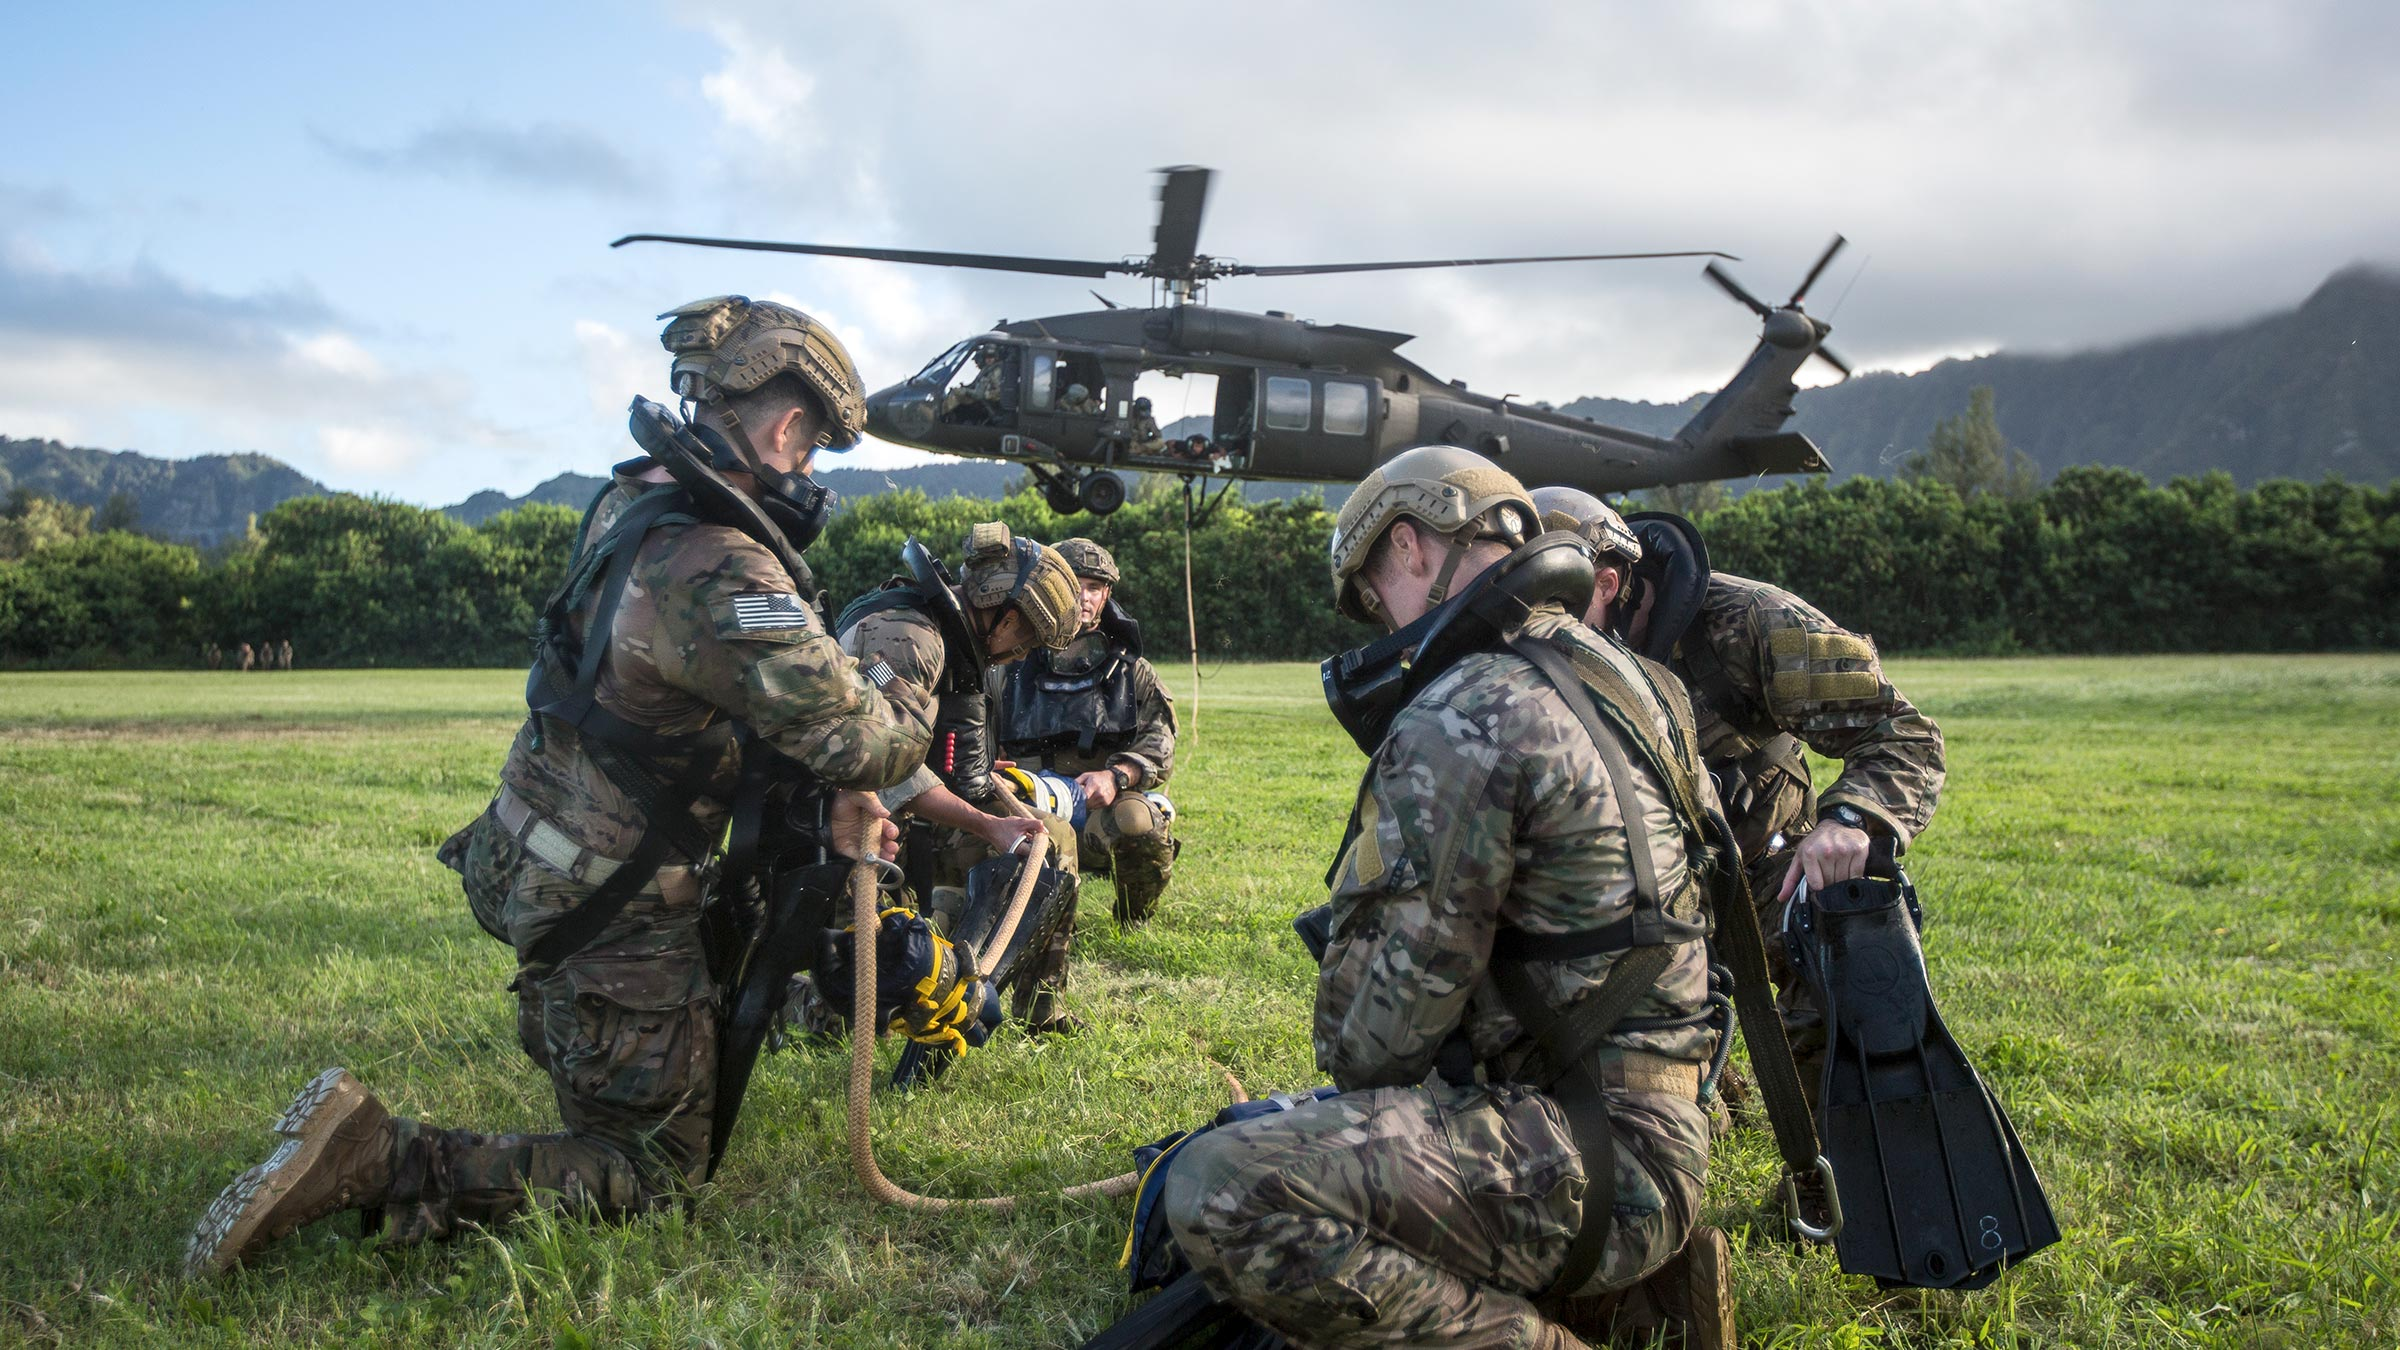 Army rangers participate in training